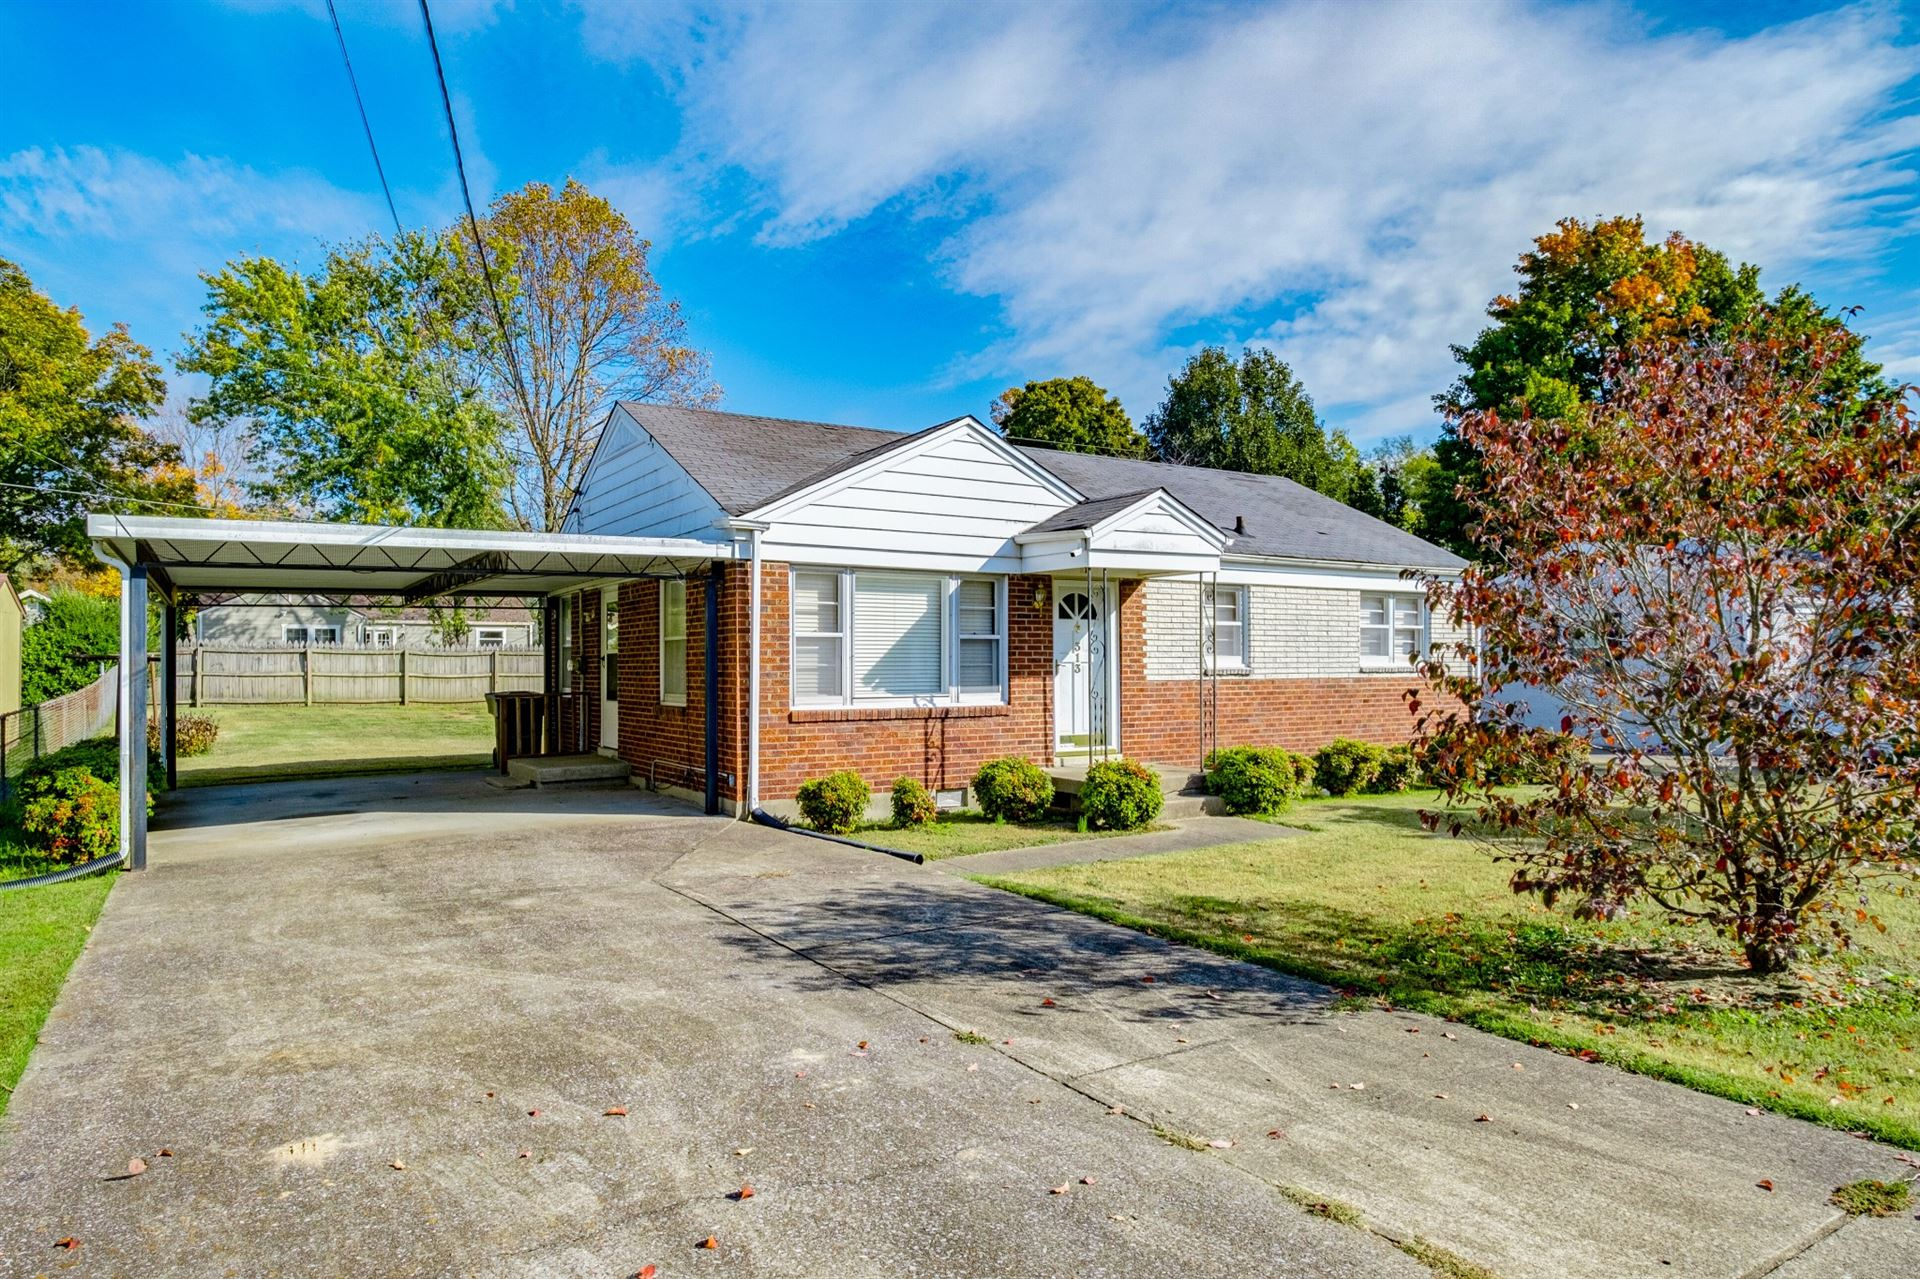 Photo of 313 James Ave, Franklin, TN 37064 (MLS # 2202017)